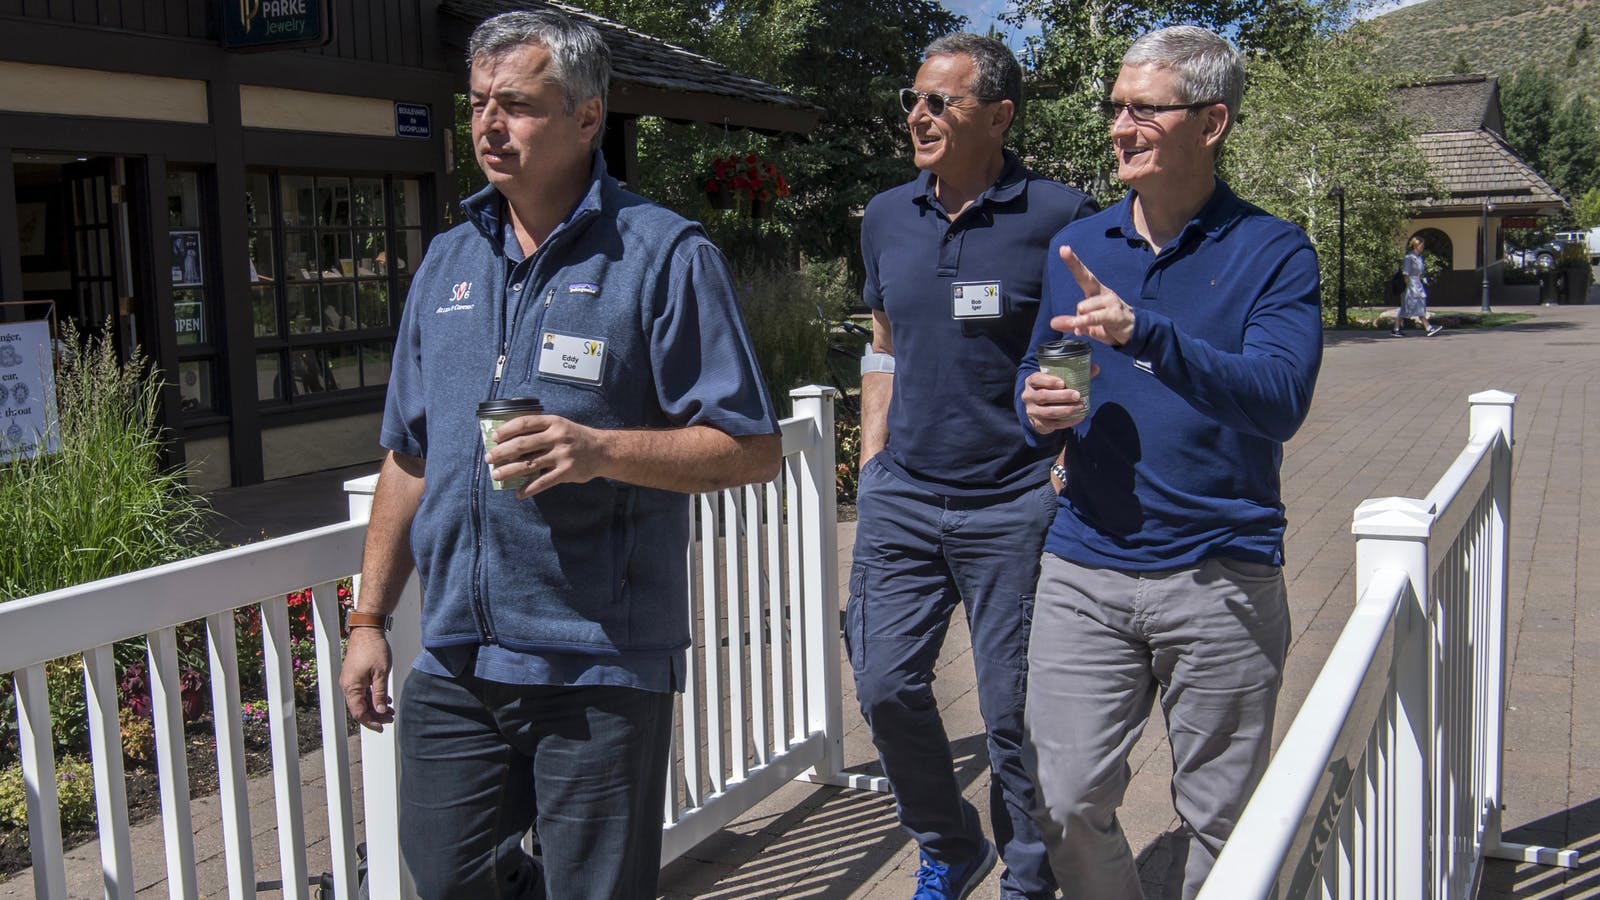 Apple's Eddy Cue, Disney CEO Bob Iger and Apple CEO Tim Cook at Sun Valley in Idaho. Photo by Bloomberg.